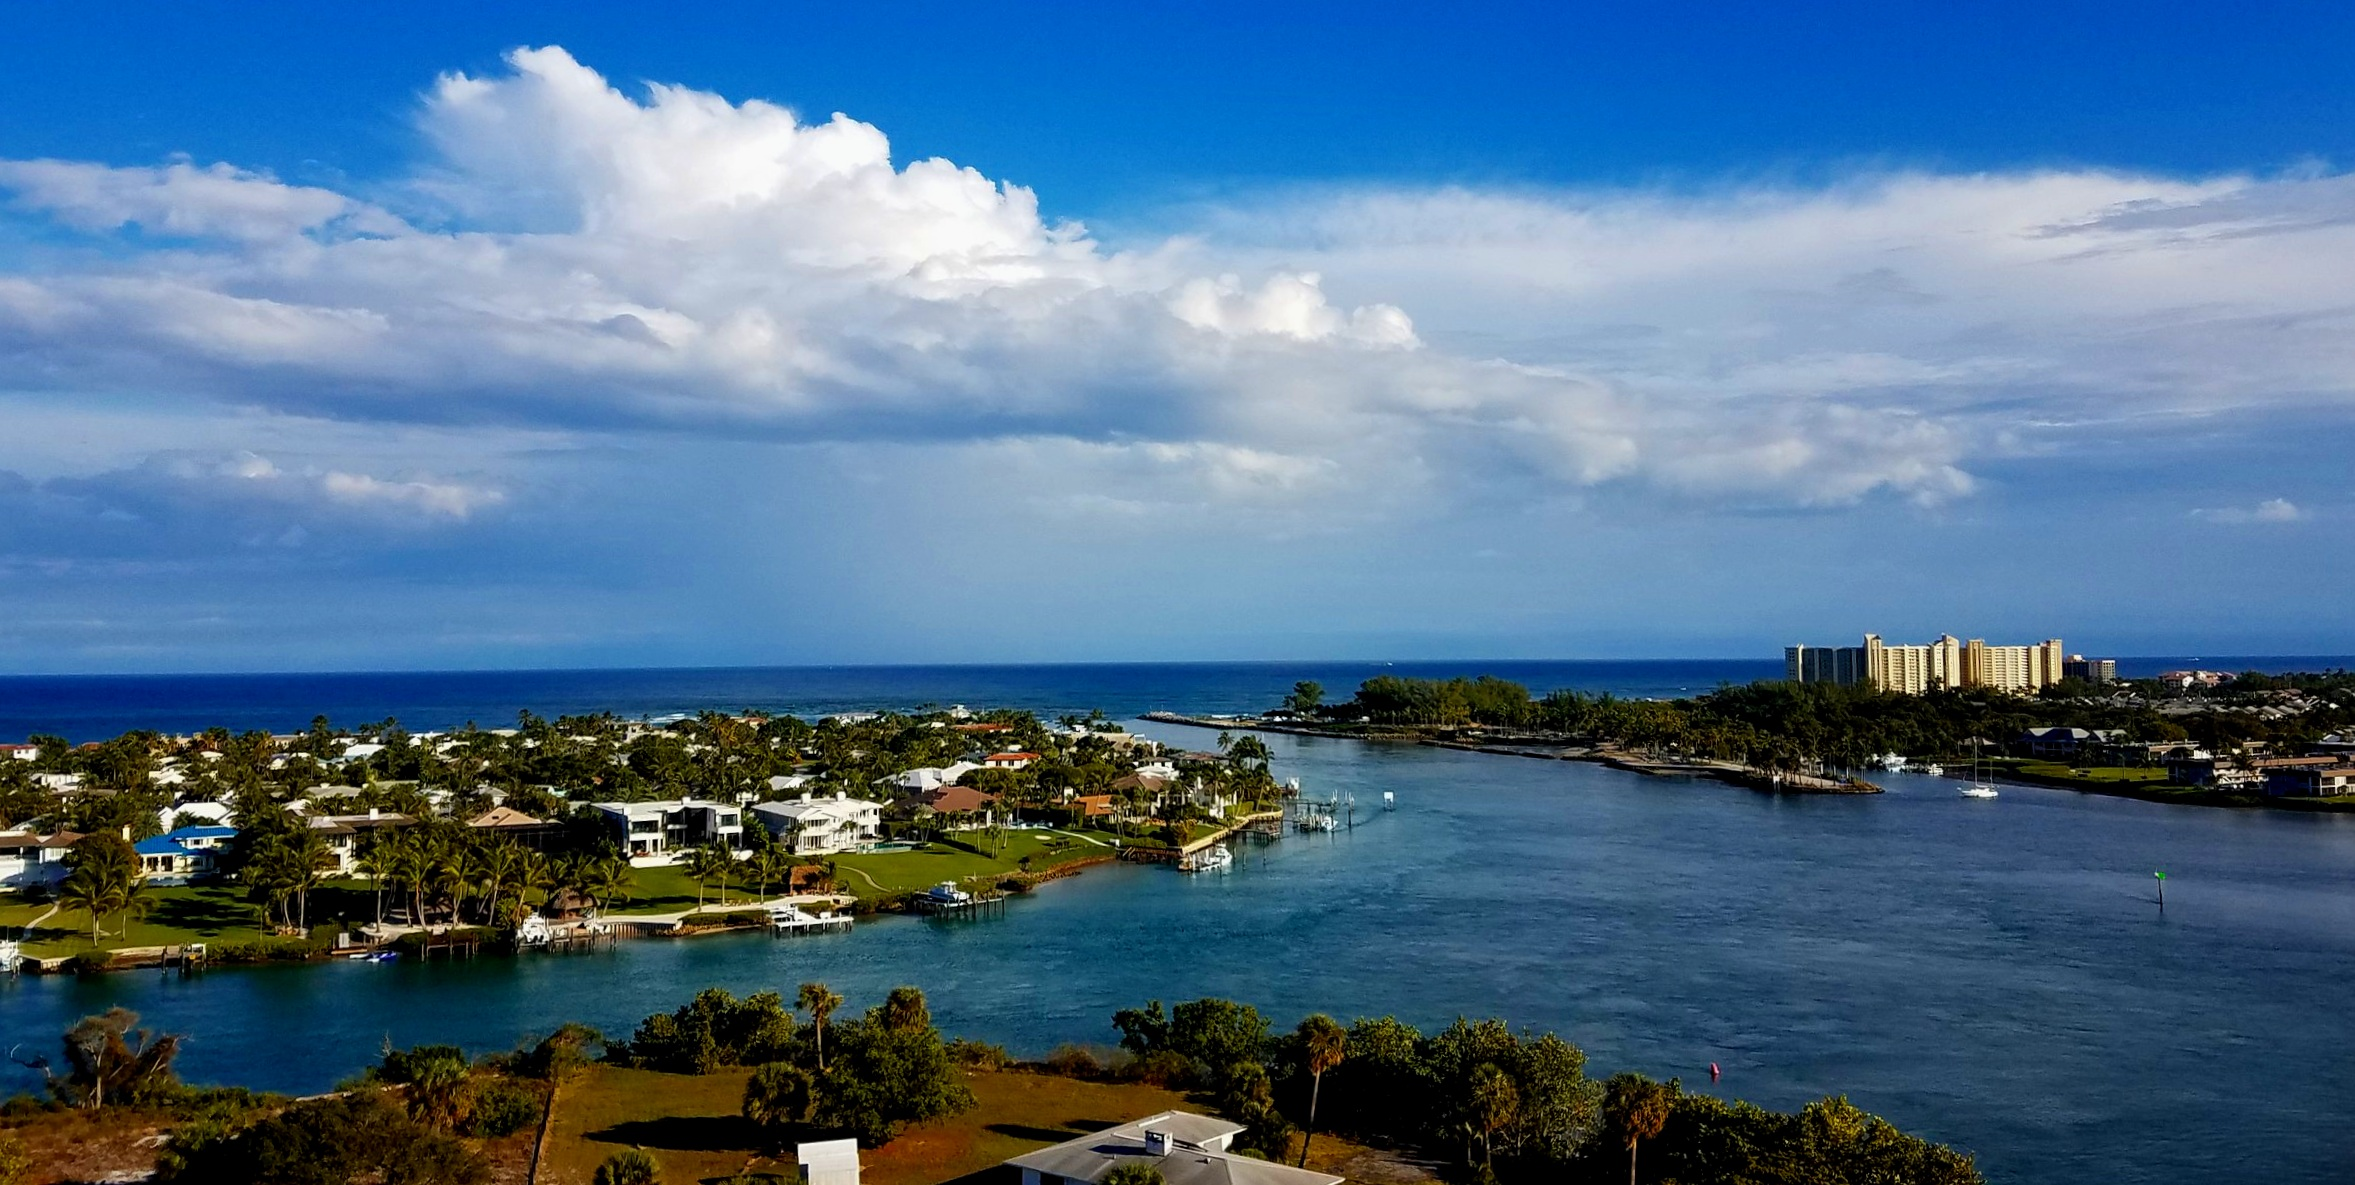 The fabulous view at the top of Jupiter Inlet and surrounds